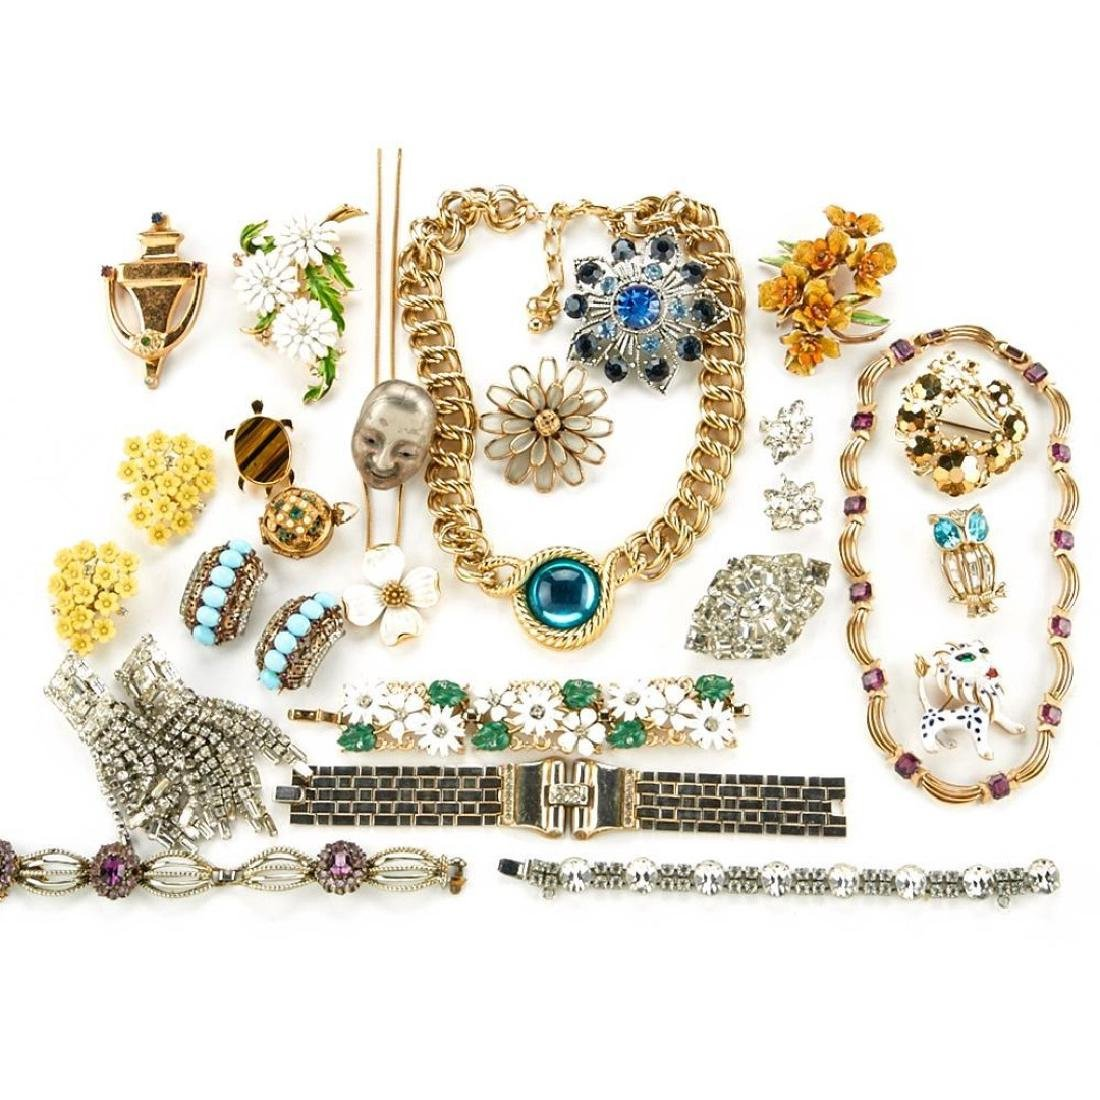 50+ vintage costume jewelry by Weiss, Coro and Trifari